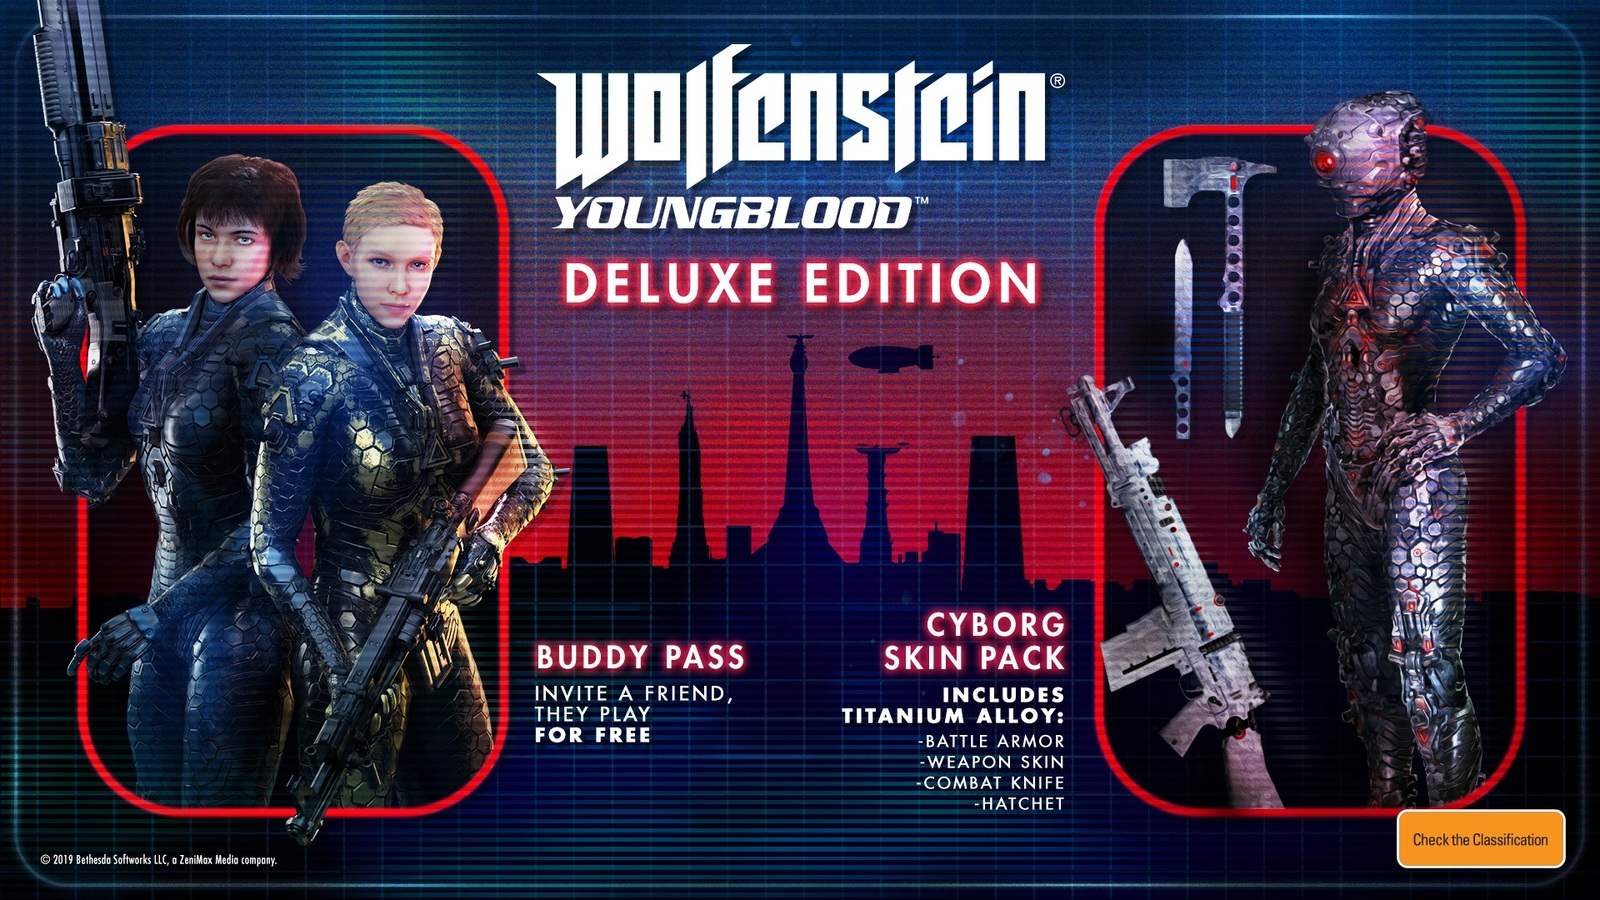 Wolfenstein Youngblood Deluxe Edition (code in box) for Switch image